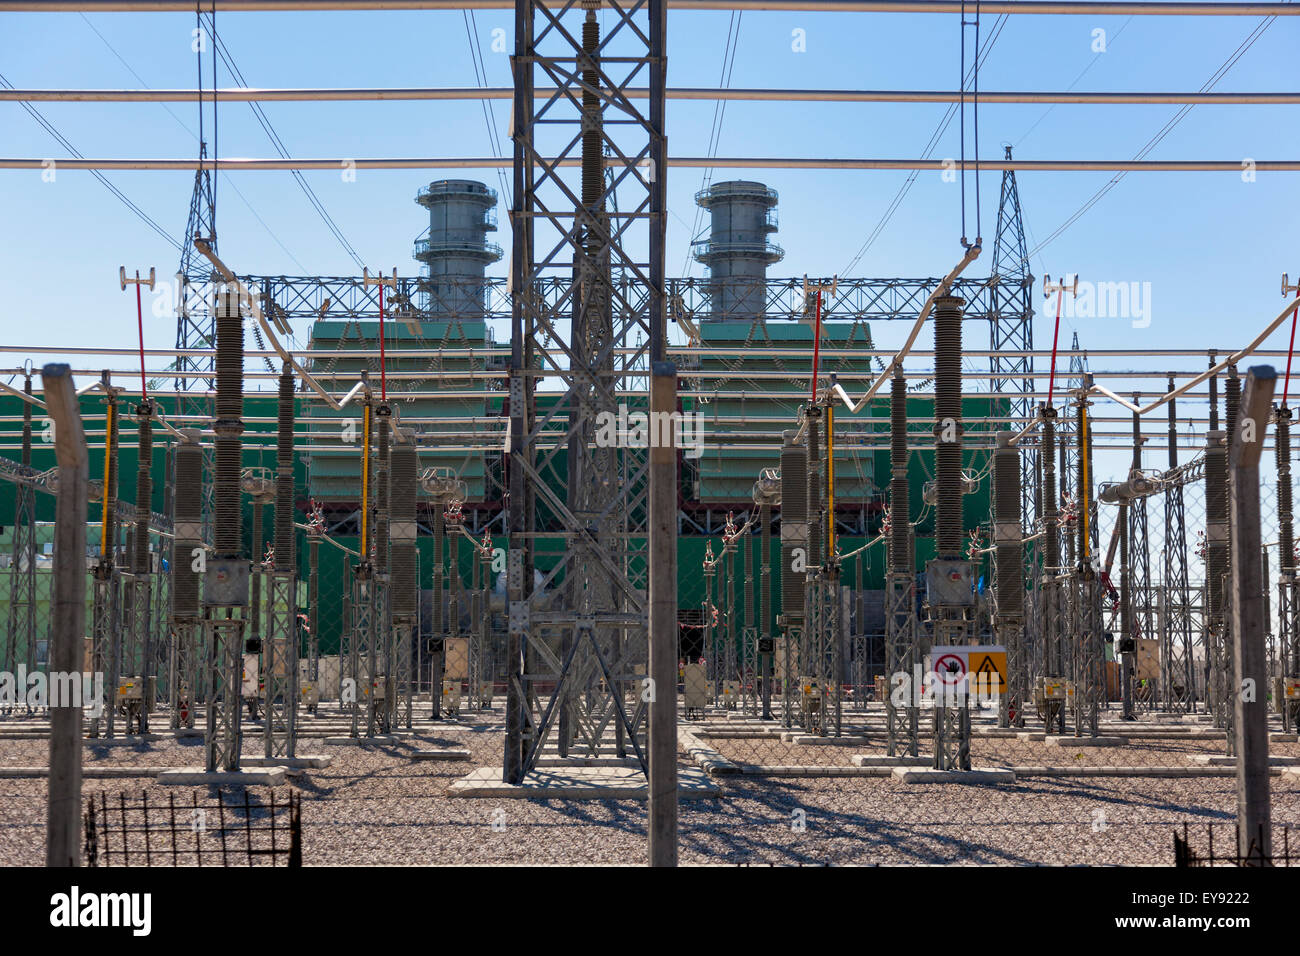 high voltage power plant outdoor switchyard stock photo 85636378 alamy. Black Bedroom Furniture Sets. Home Design Ideas